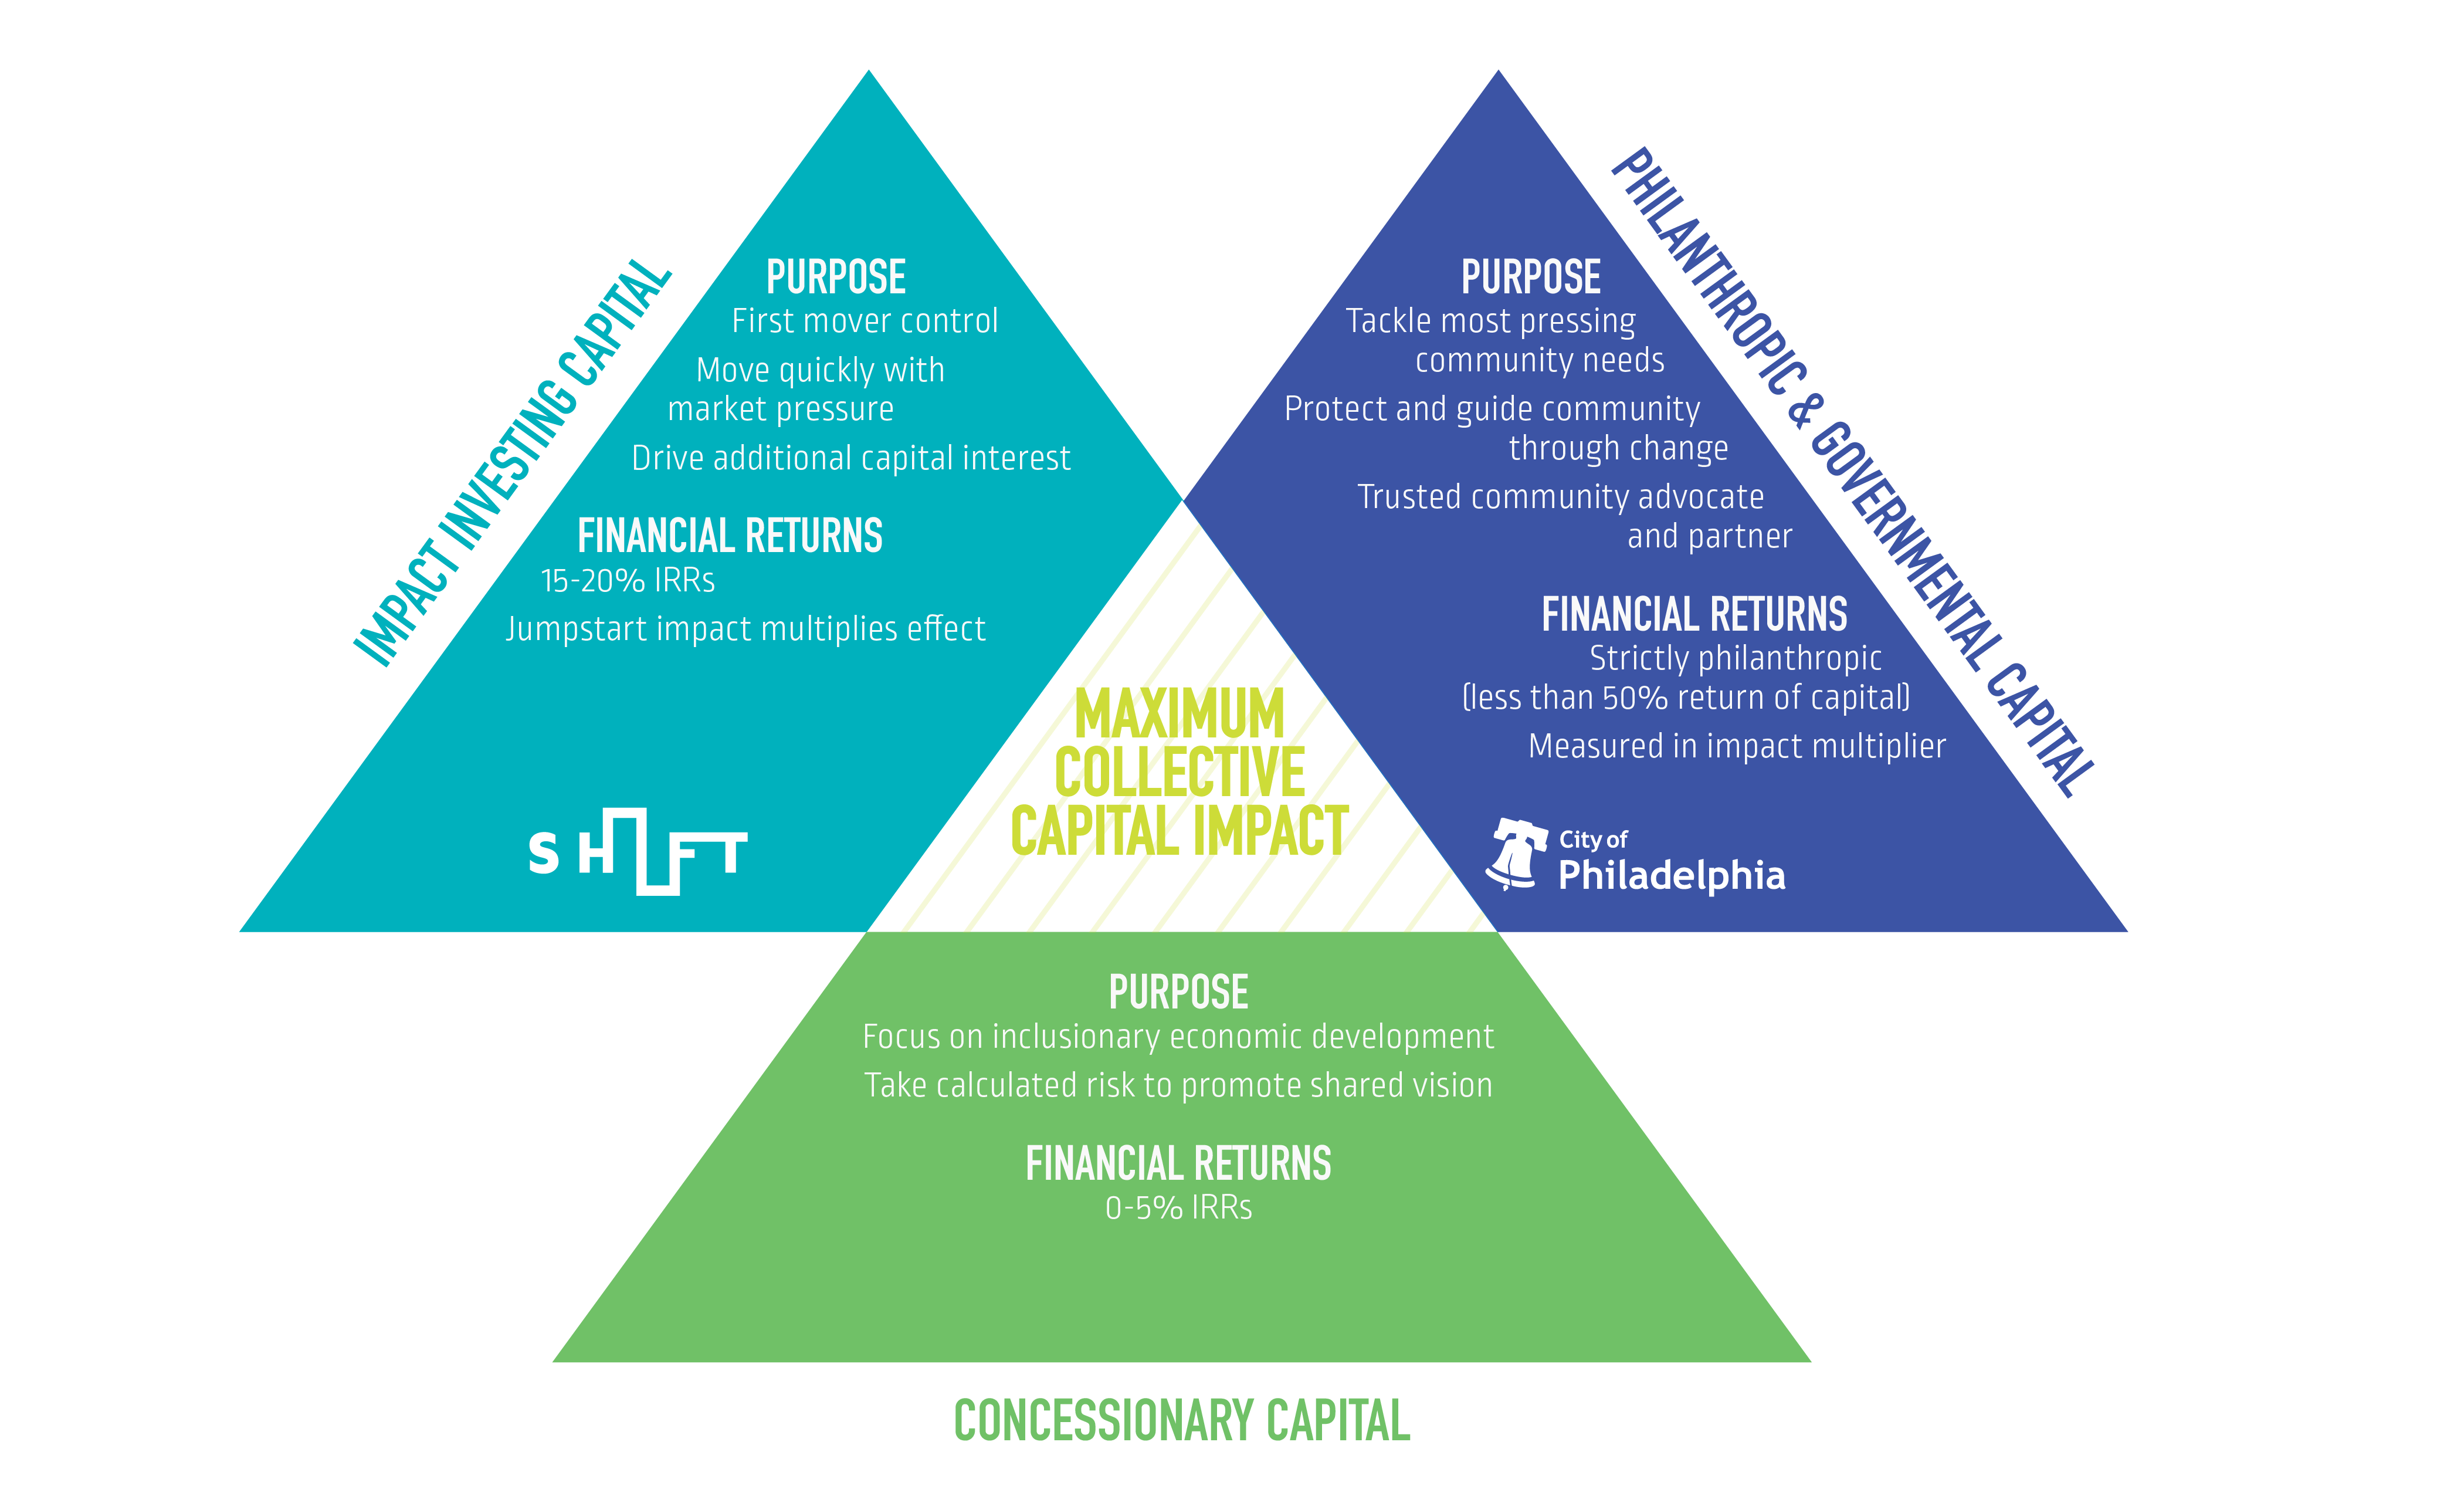 SHIFT collective capital approach